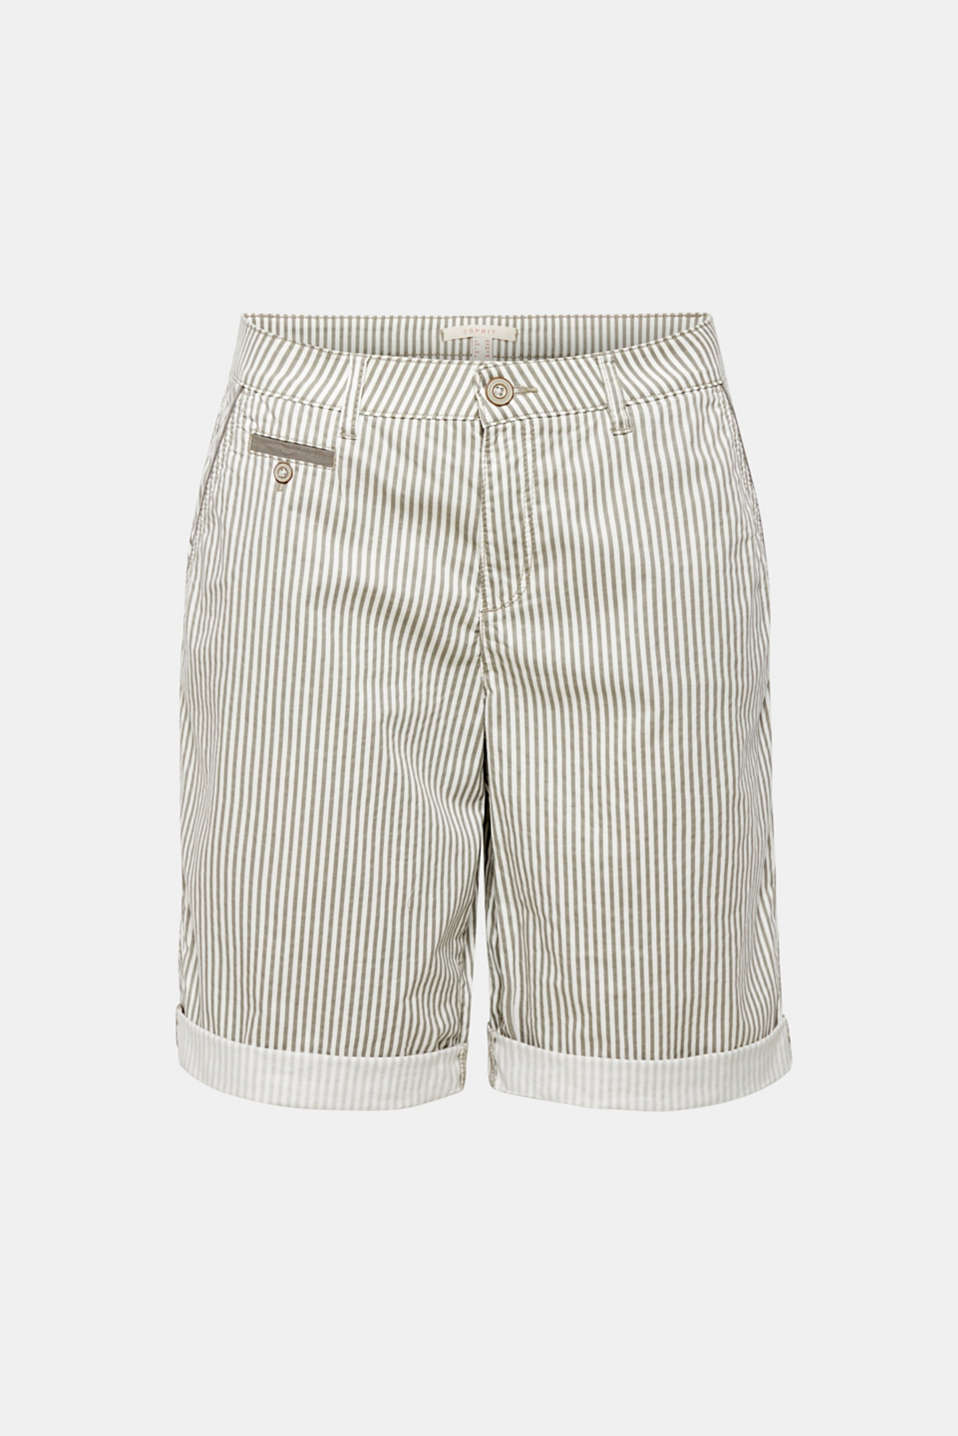 Striped shorts made of stretch cotton